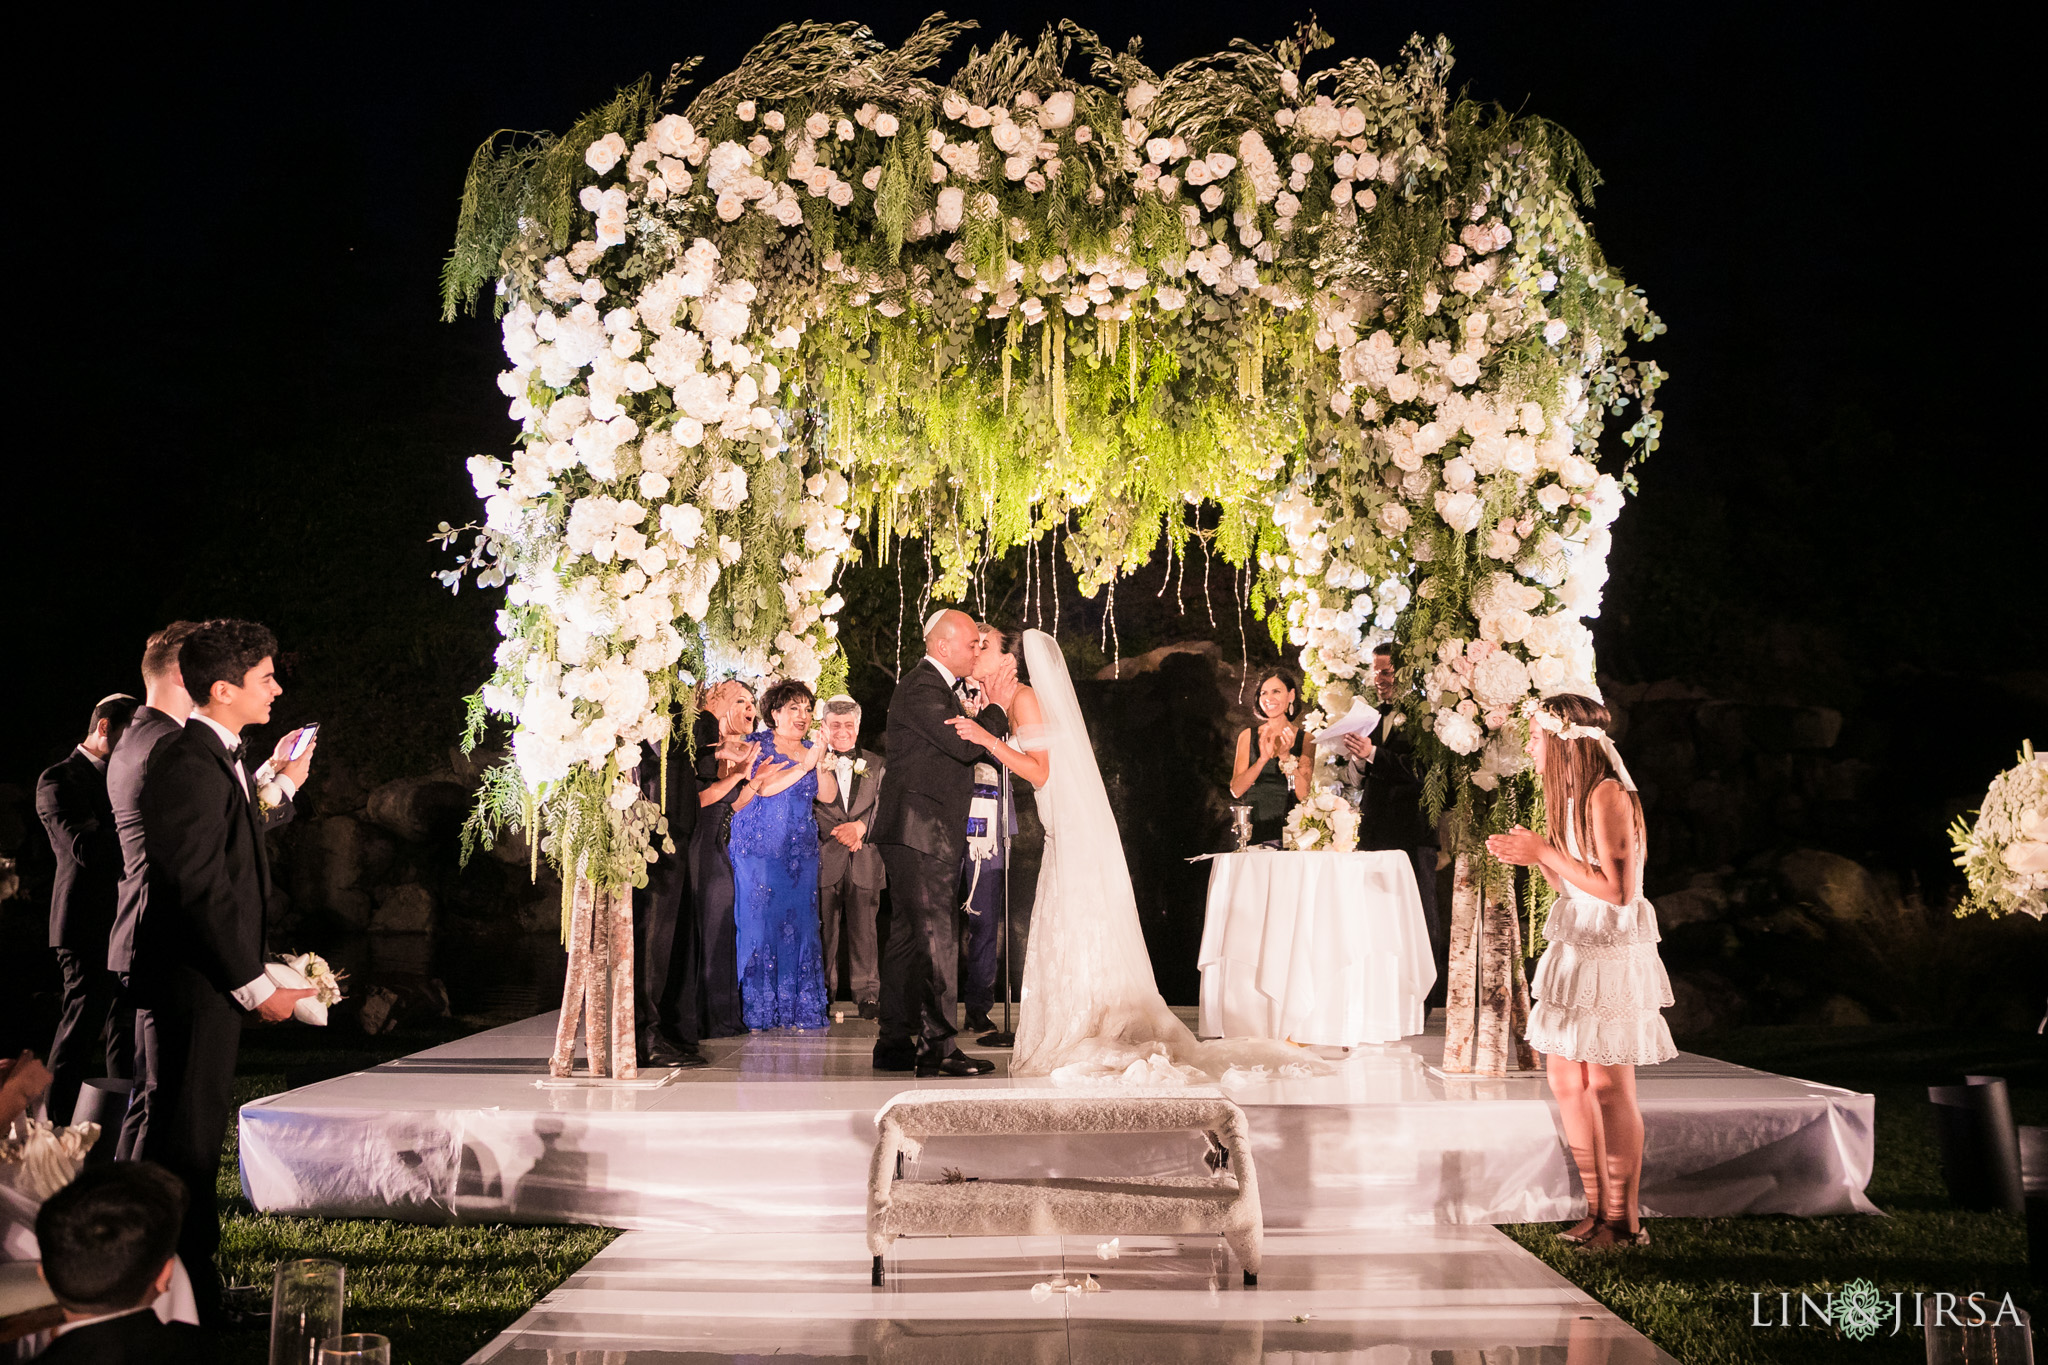 jewish singles in westlake village A comprehensive listing of westlake village synagogues, westlake village shuls and westlake villagejewish temples from mavensearch, the jewish directory.